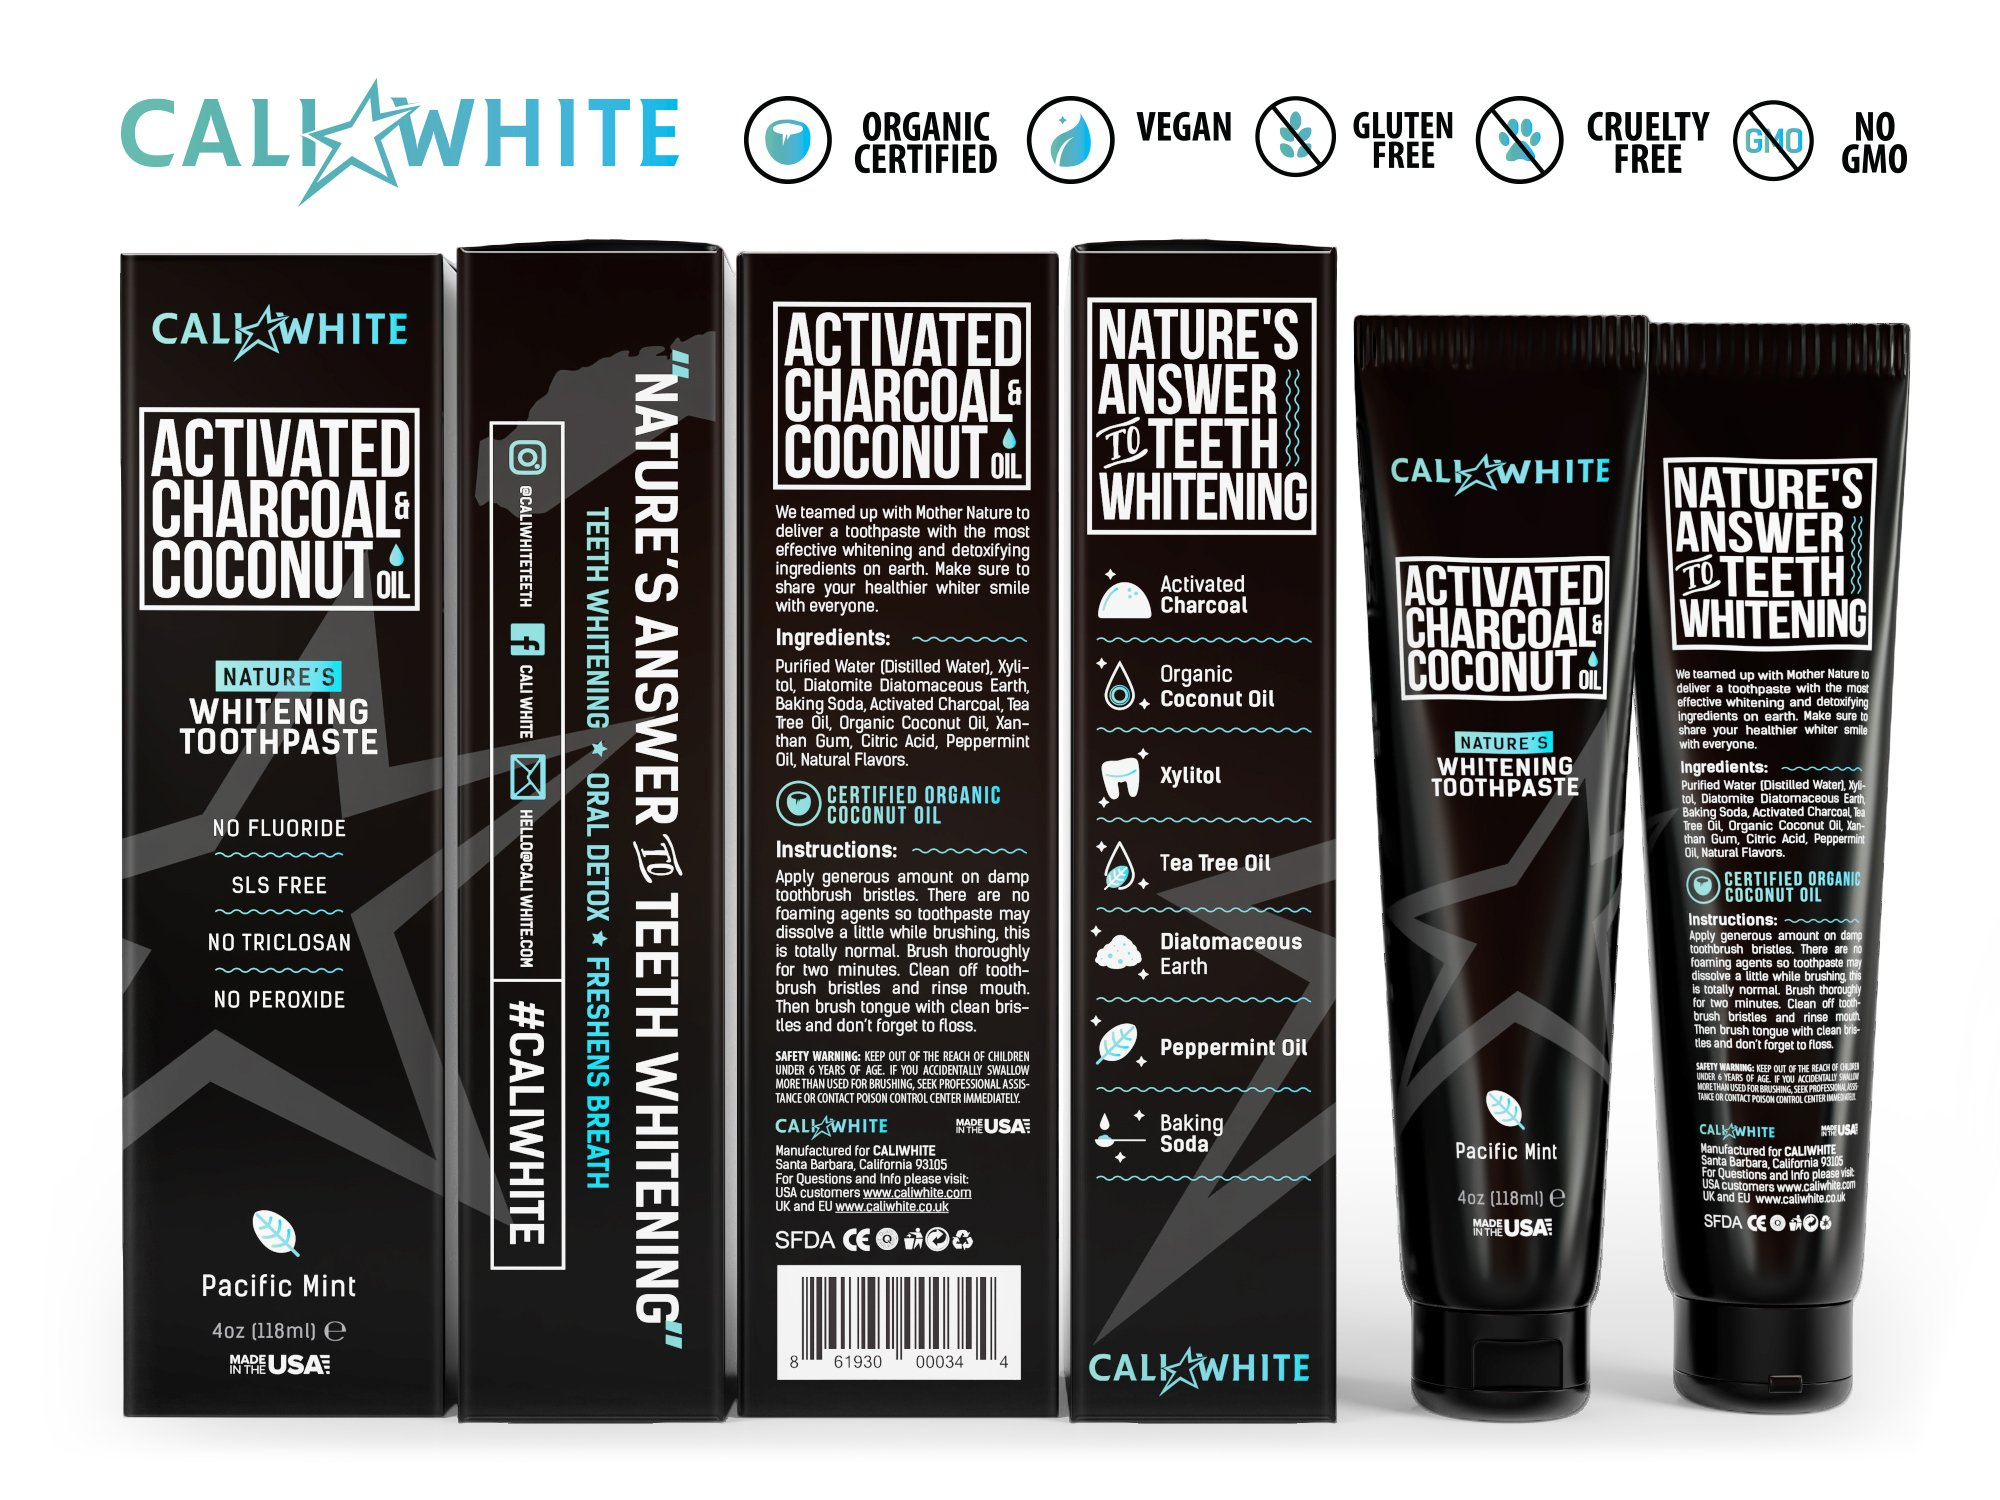 Cali White ACTIVATED CHARCOAL & ORGANIC COCONUT OIL TEETH WHITENING TOOTHPASTE, MADE IN USA, Best Natural Whitener, Vegan, Fluoride Free, Sulfate Free, Organic, Black Tooth Paste, Kids MINT (4oz) by Cali White (Image #3)